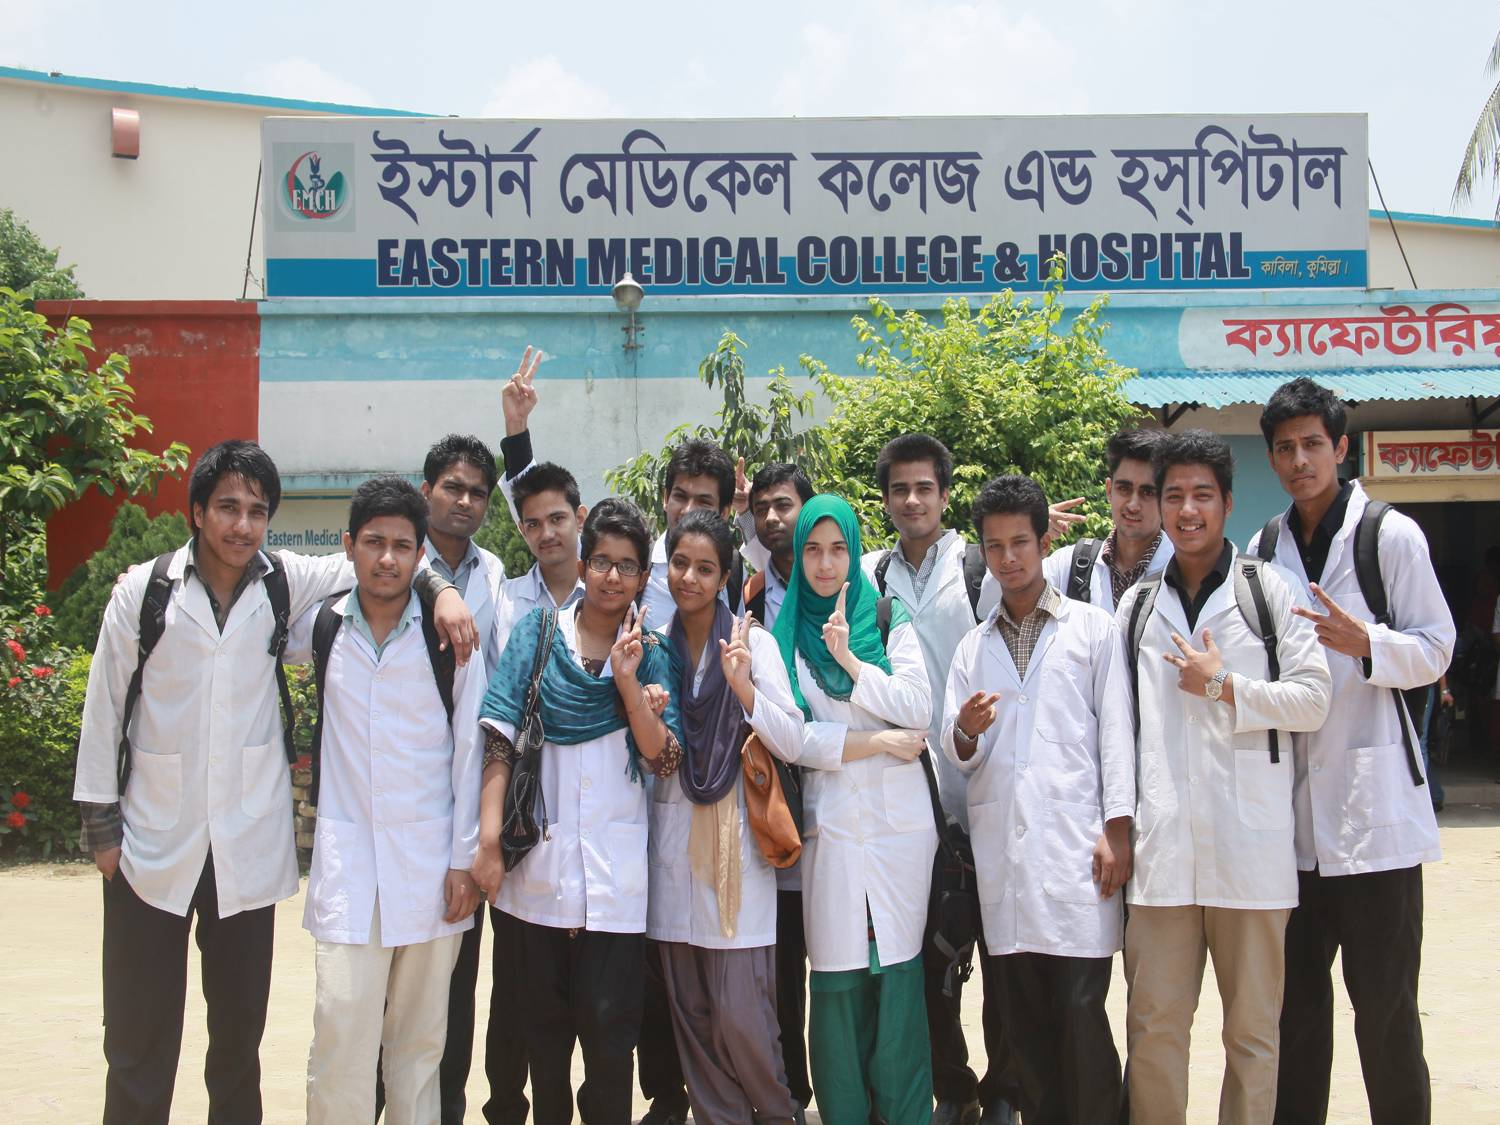 Eastern Medical College